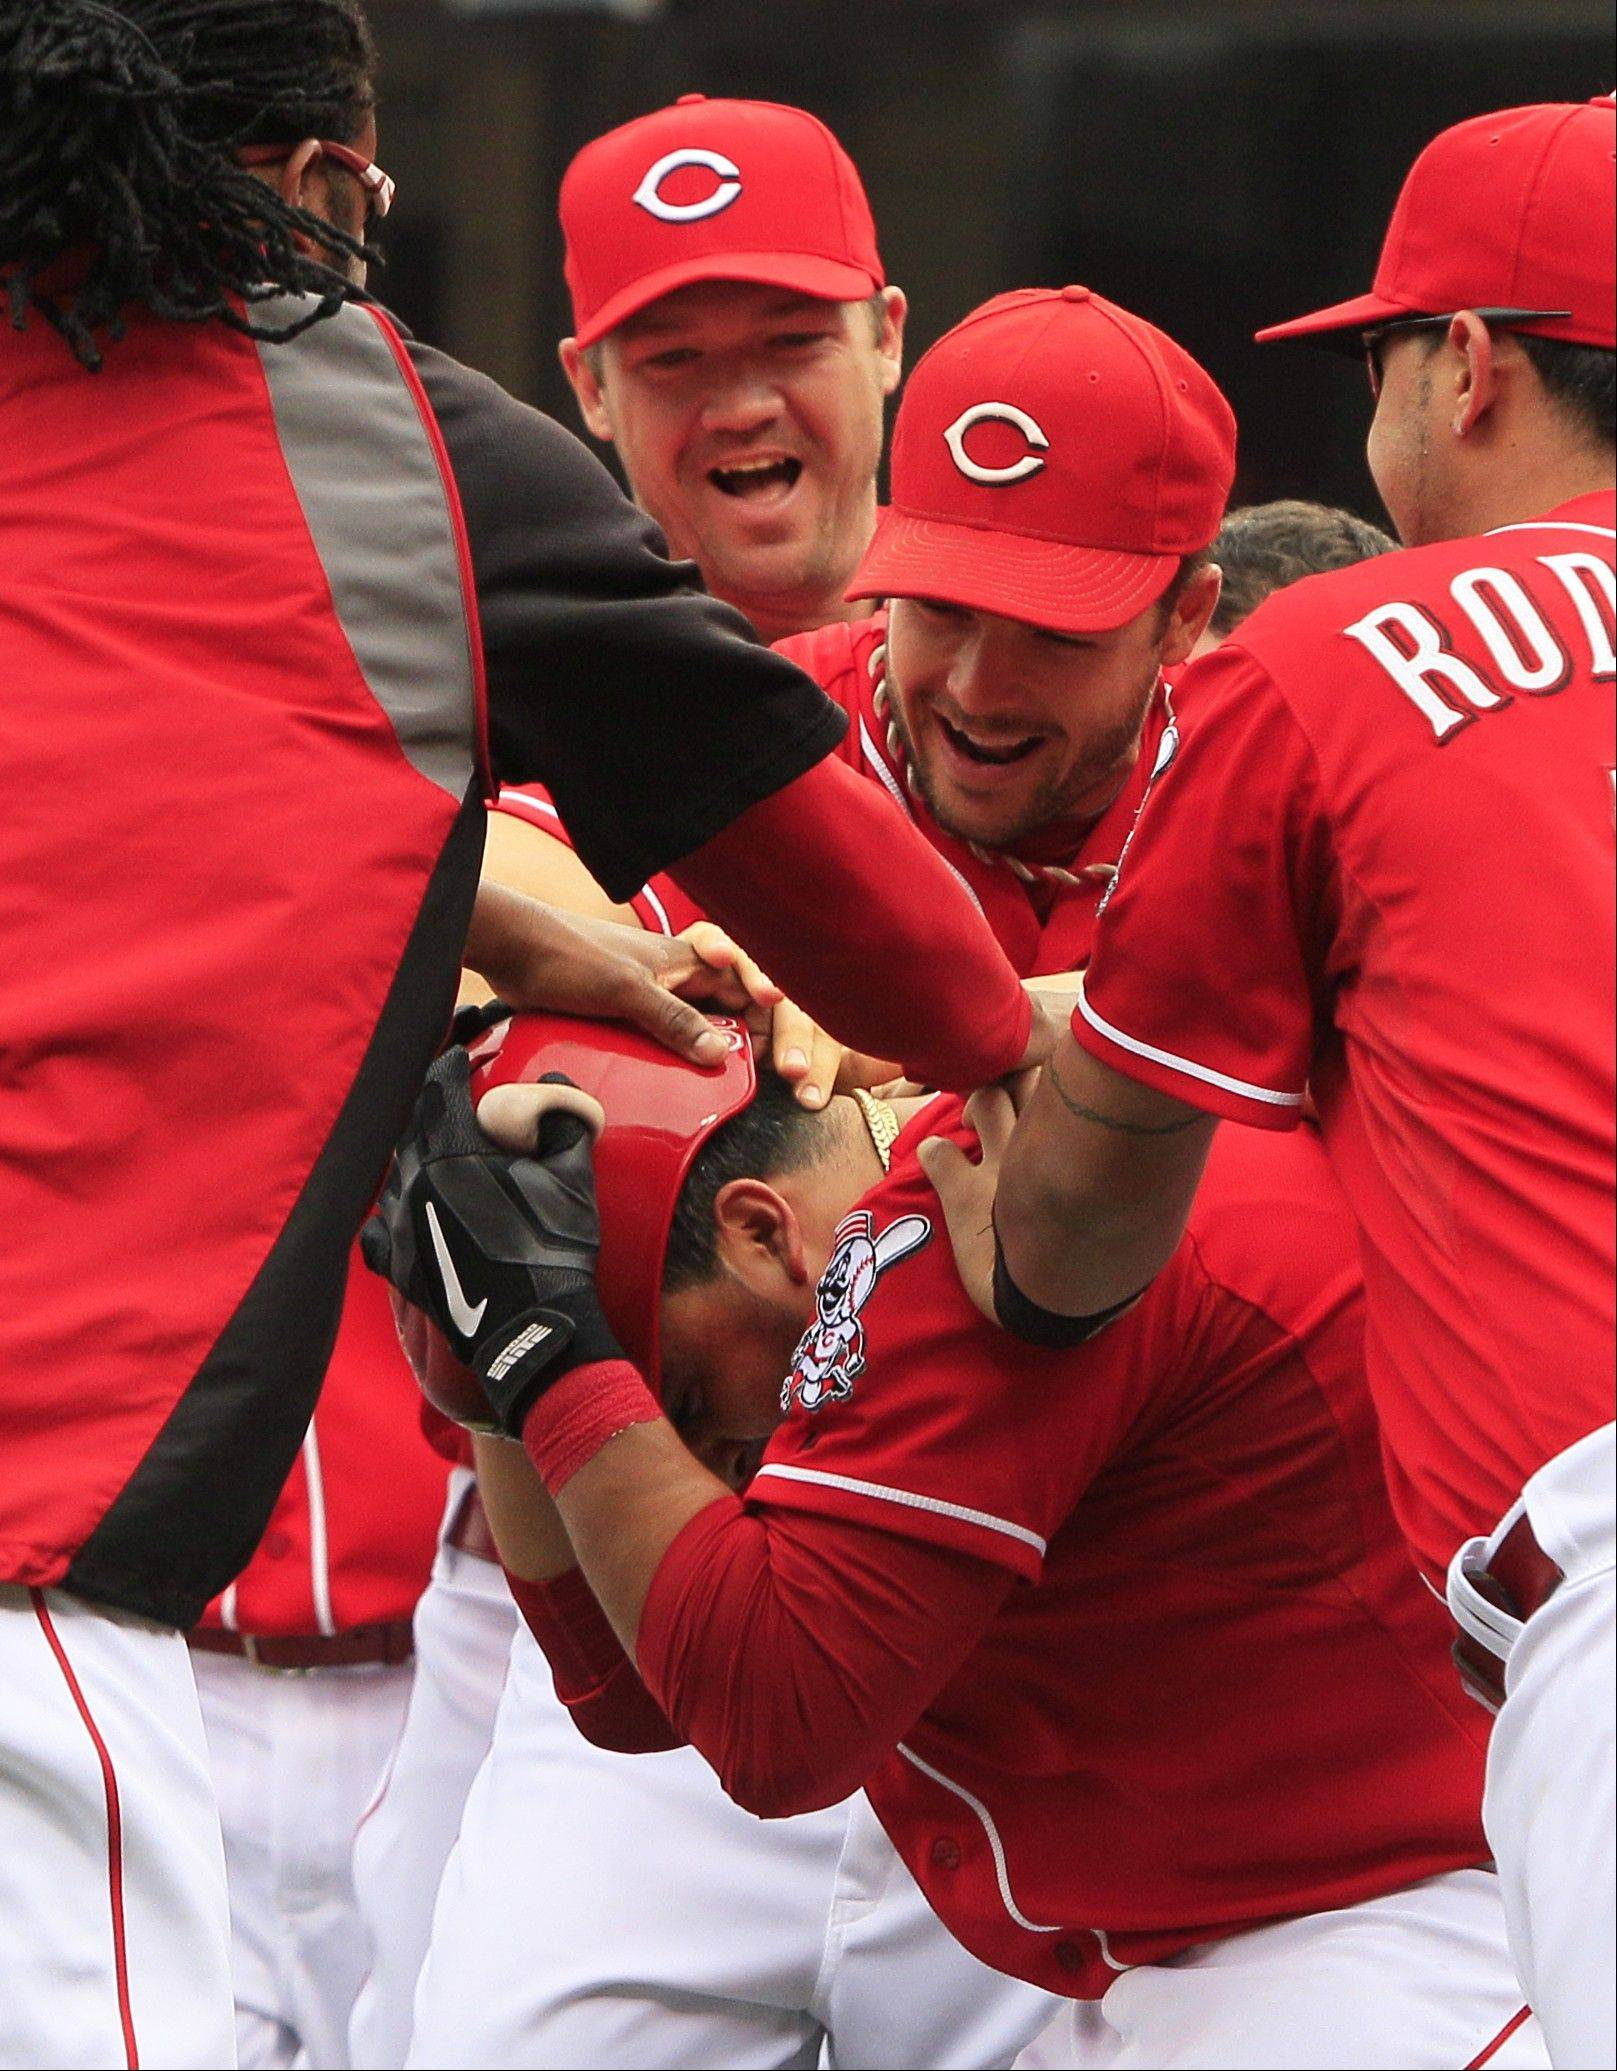 Cincinnati's Dioner Navarro, bottom, covers his head as he is mobbed by his teammates after hitting a triple to drive in the winning run Thursday at home against the Milwaukee Brewers.